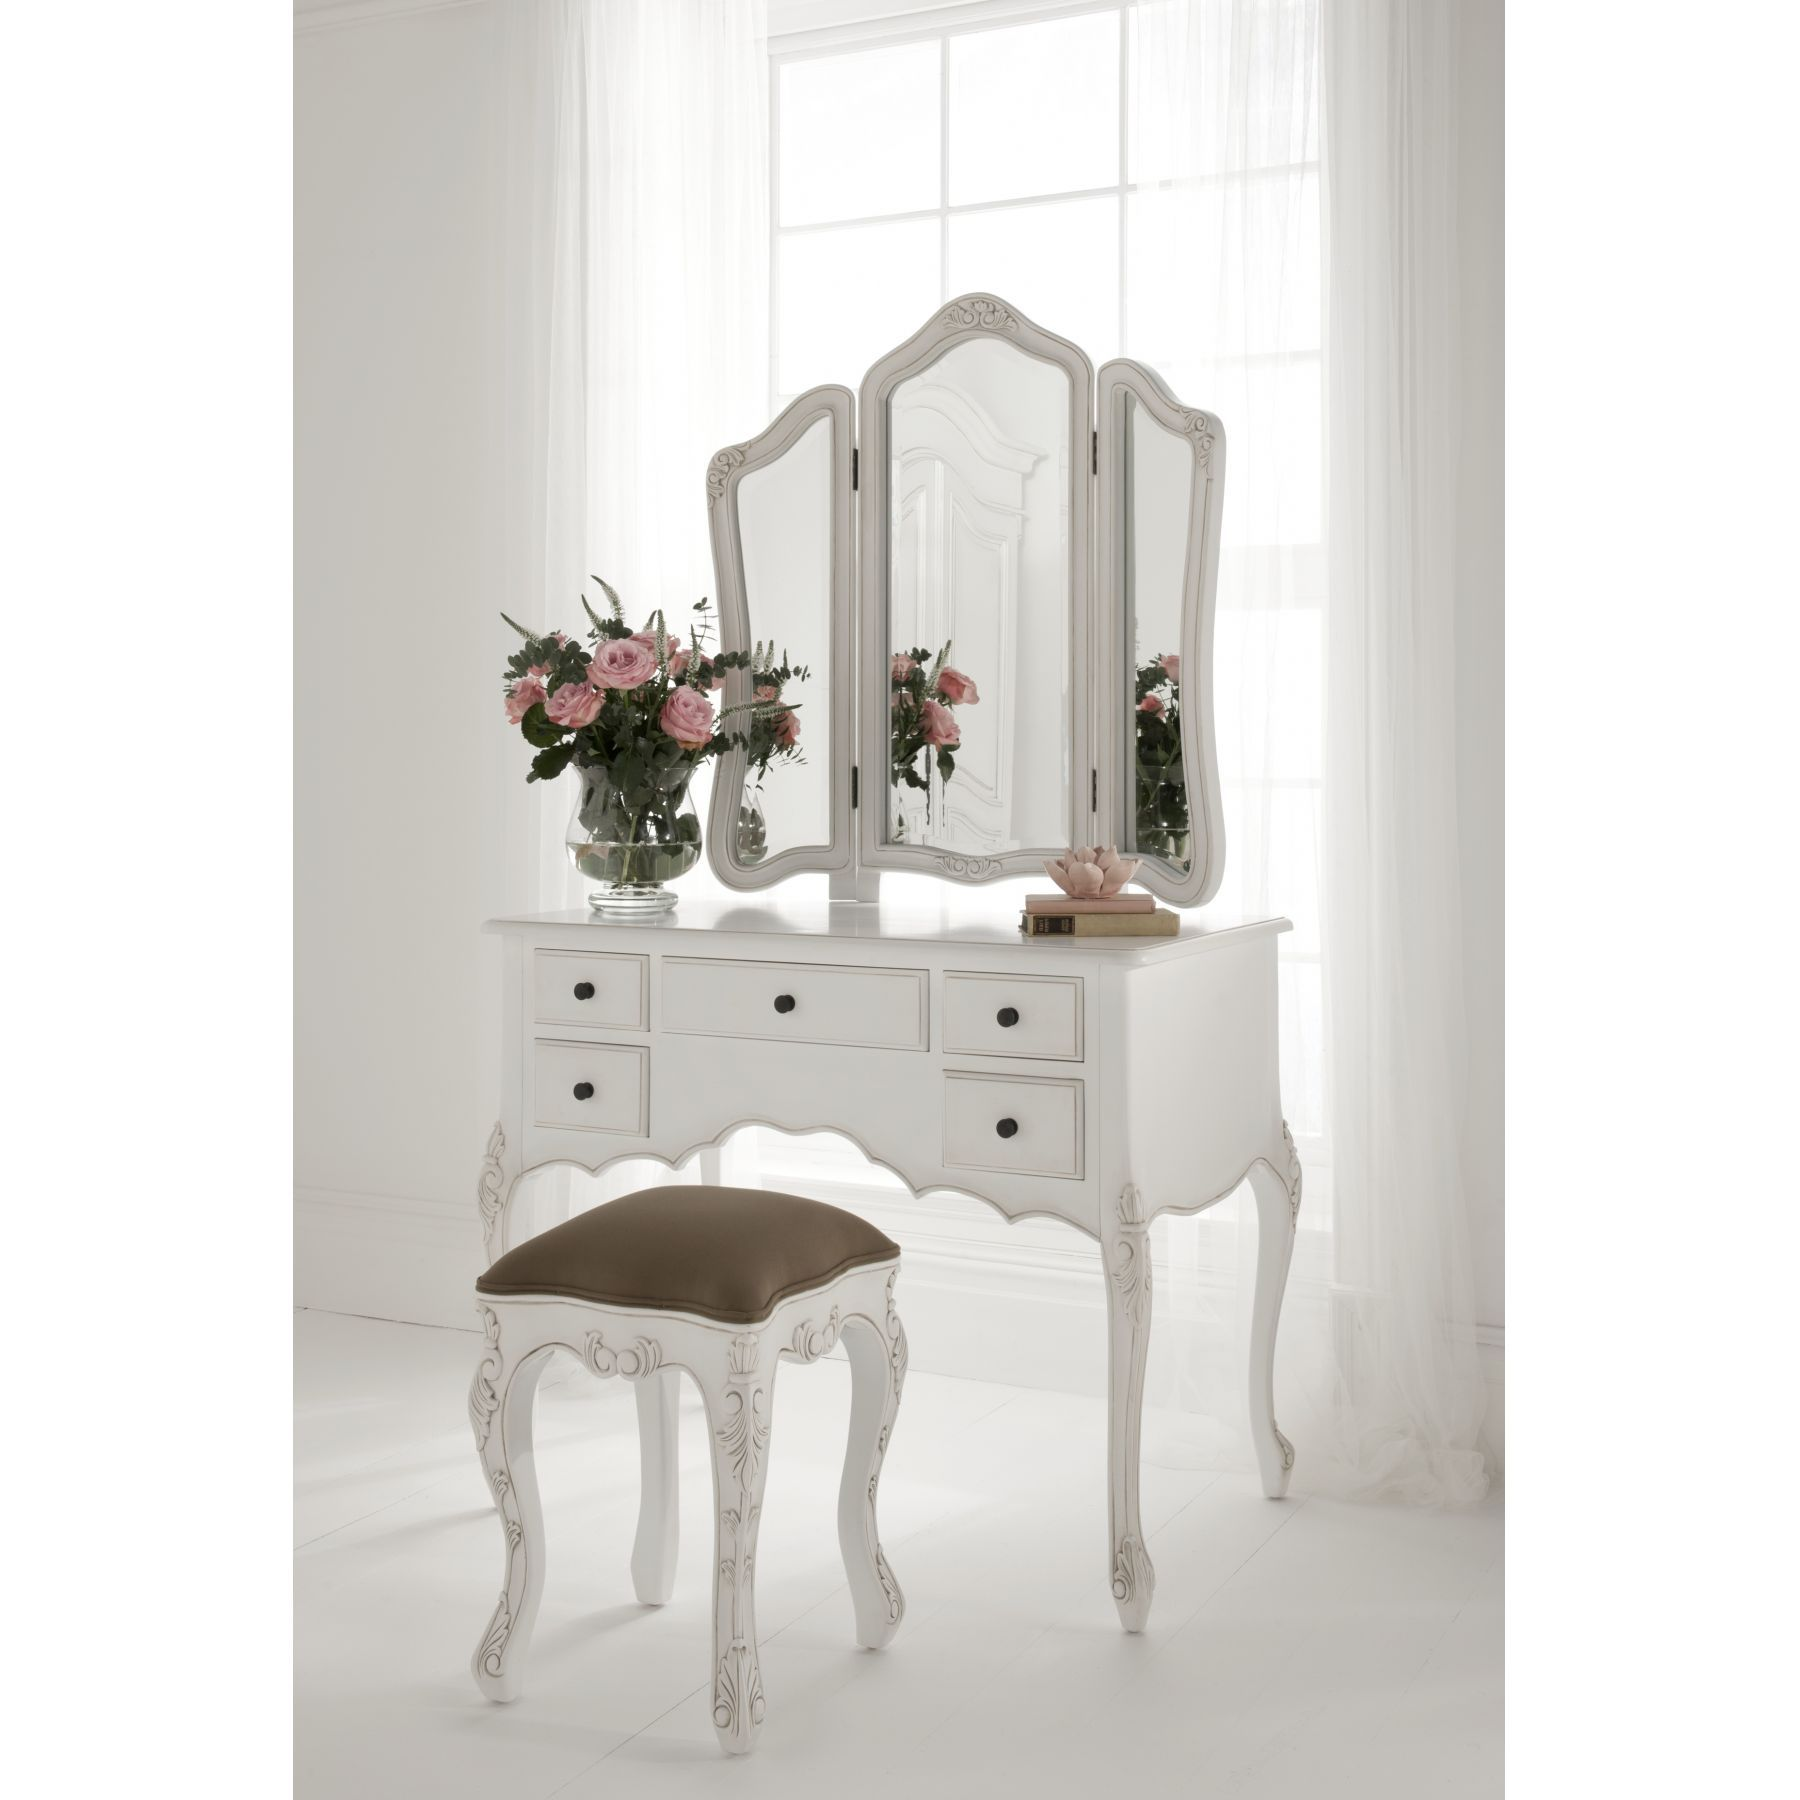 Exceptional Dressing Tables Classic And Modern Design: Amazing White  Trifold Mirror With 5 Drawers Storage And Stool As Inspiring Classy Makeup  Vanity ...